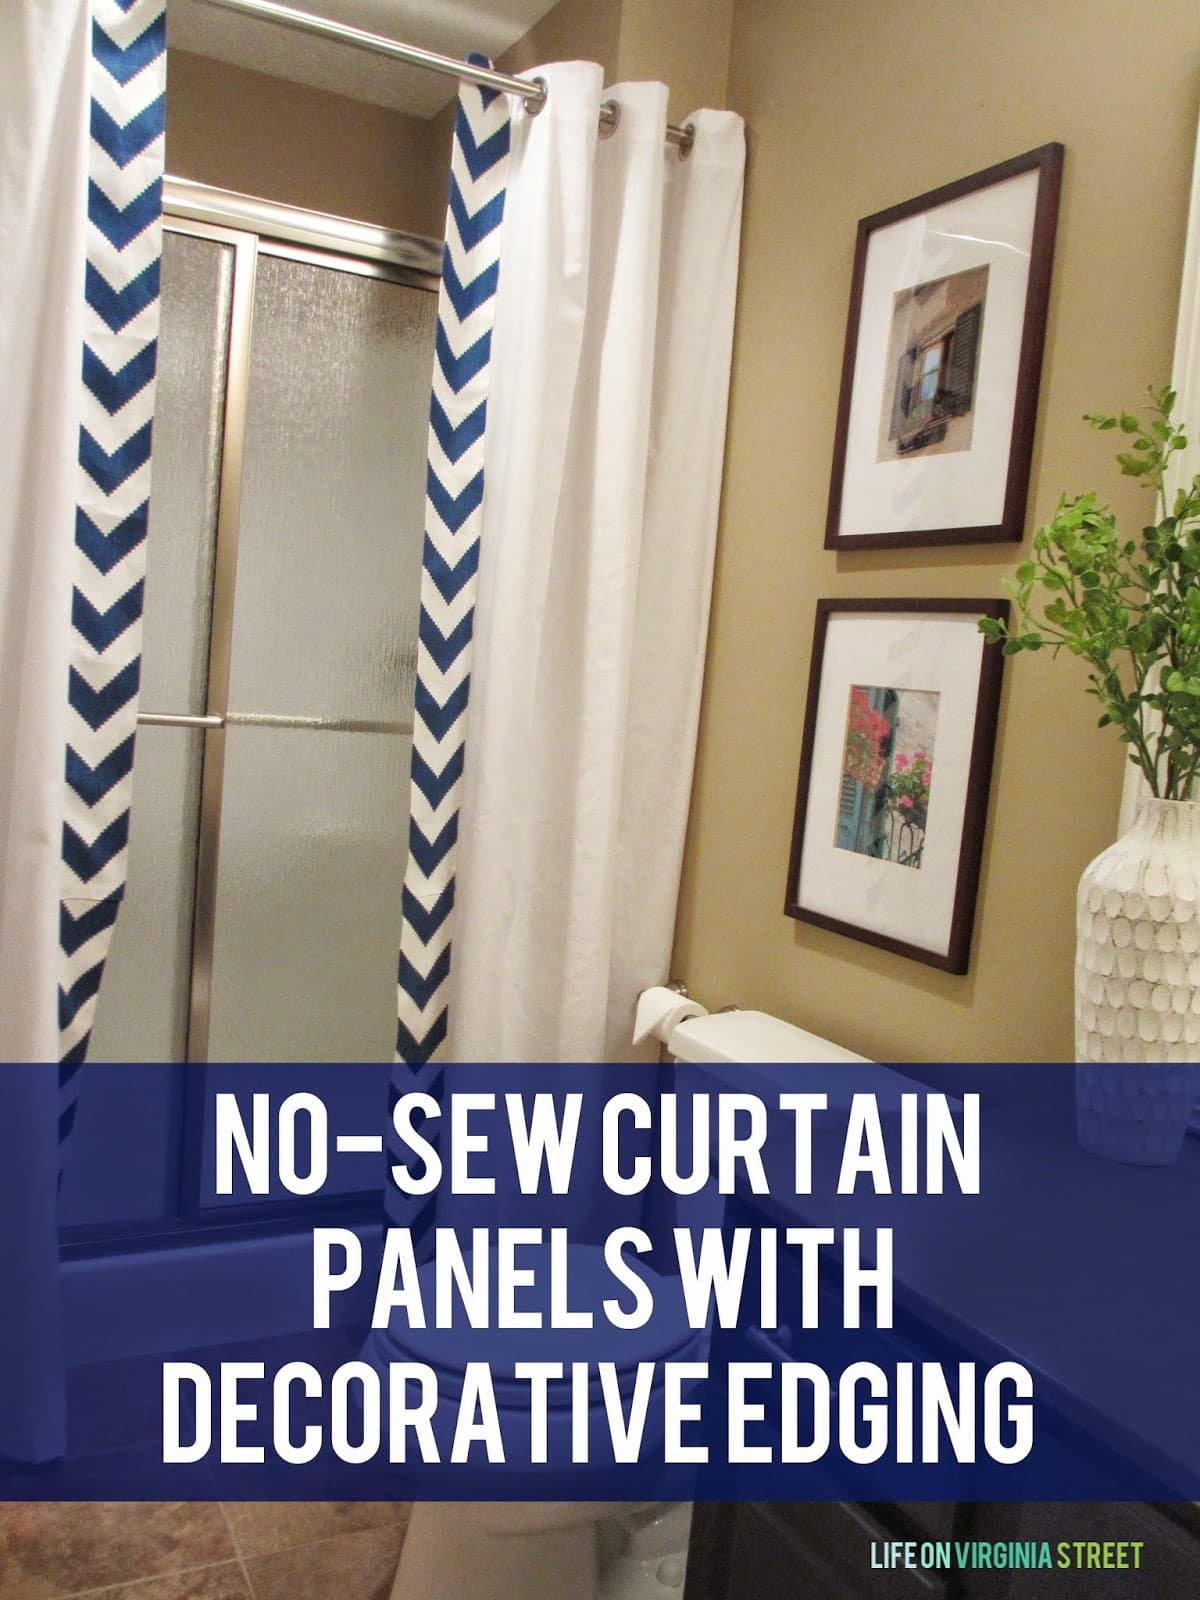 Fun no-sew shower curtain panels with decorative edging to update our guest bathroom! Easy DIY tutorial.